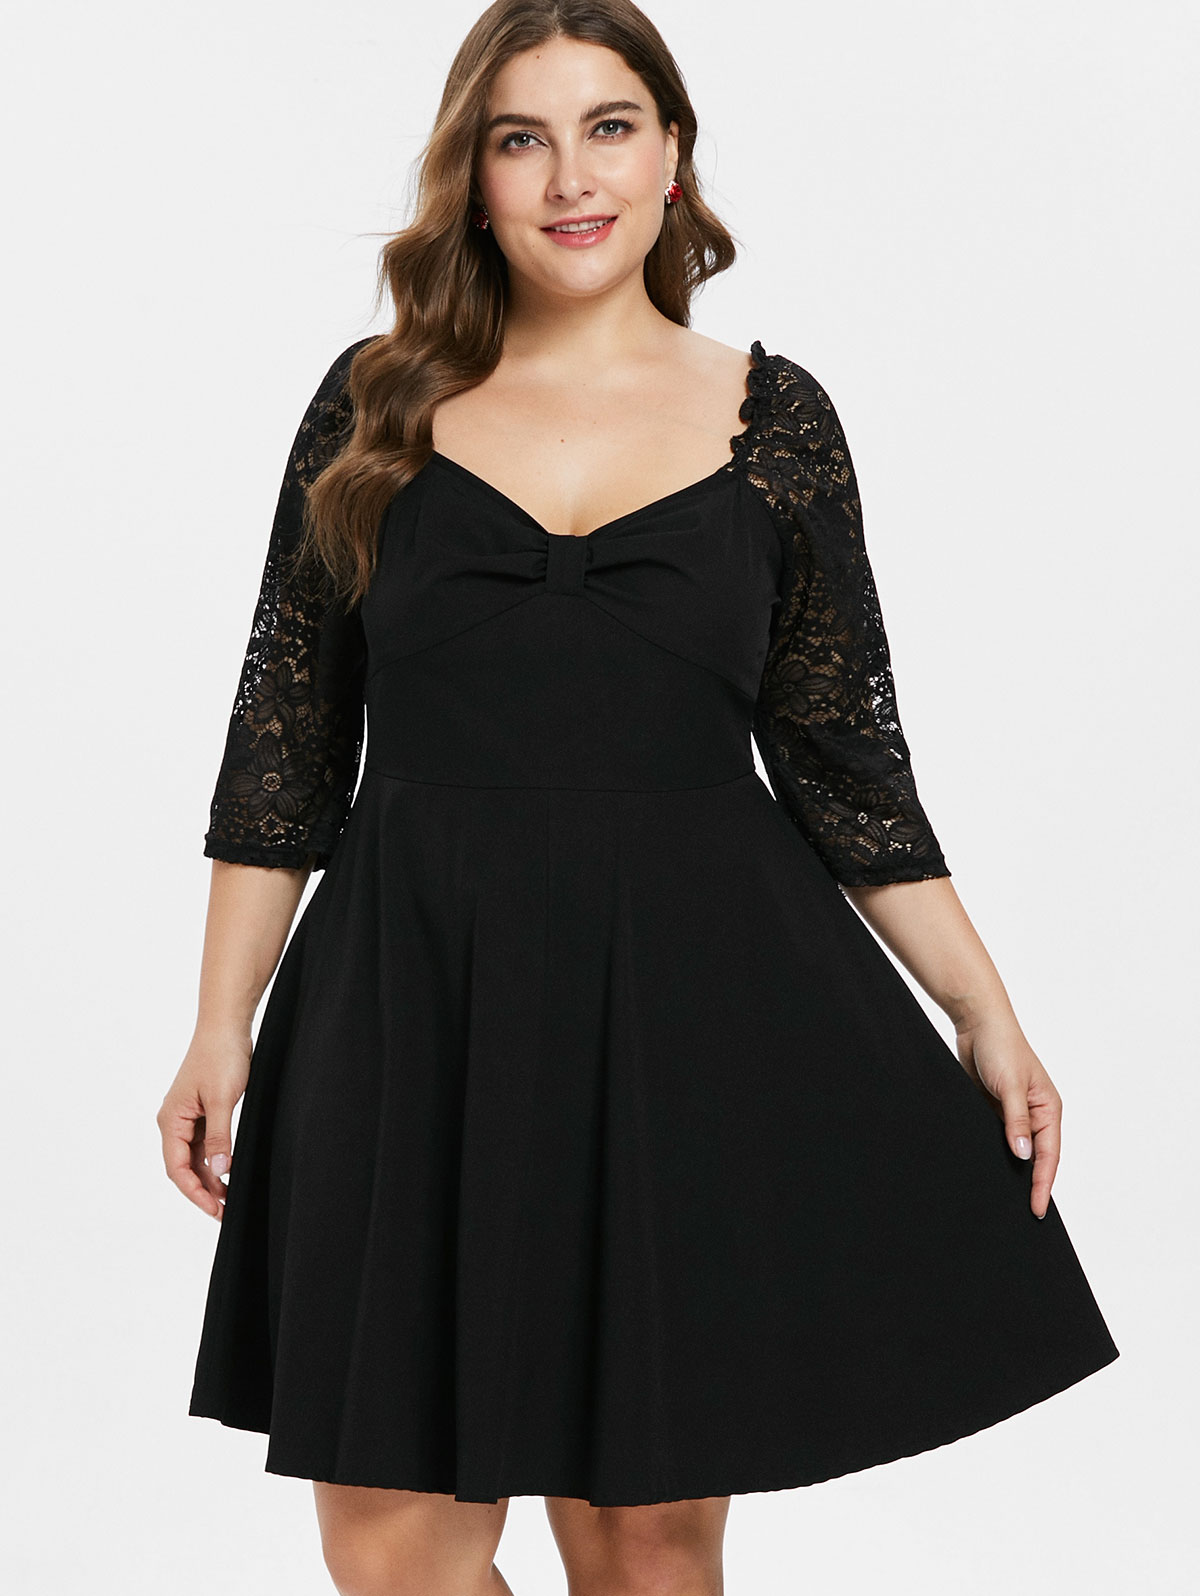 ac0d4f055ef Details about Plus Size Knee Length Lace Panel Dress Cut Out 3/4 Sleeve  Party Skater Dress New